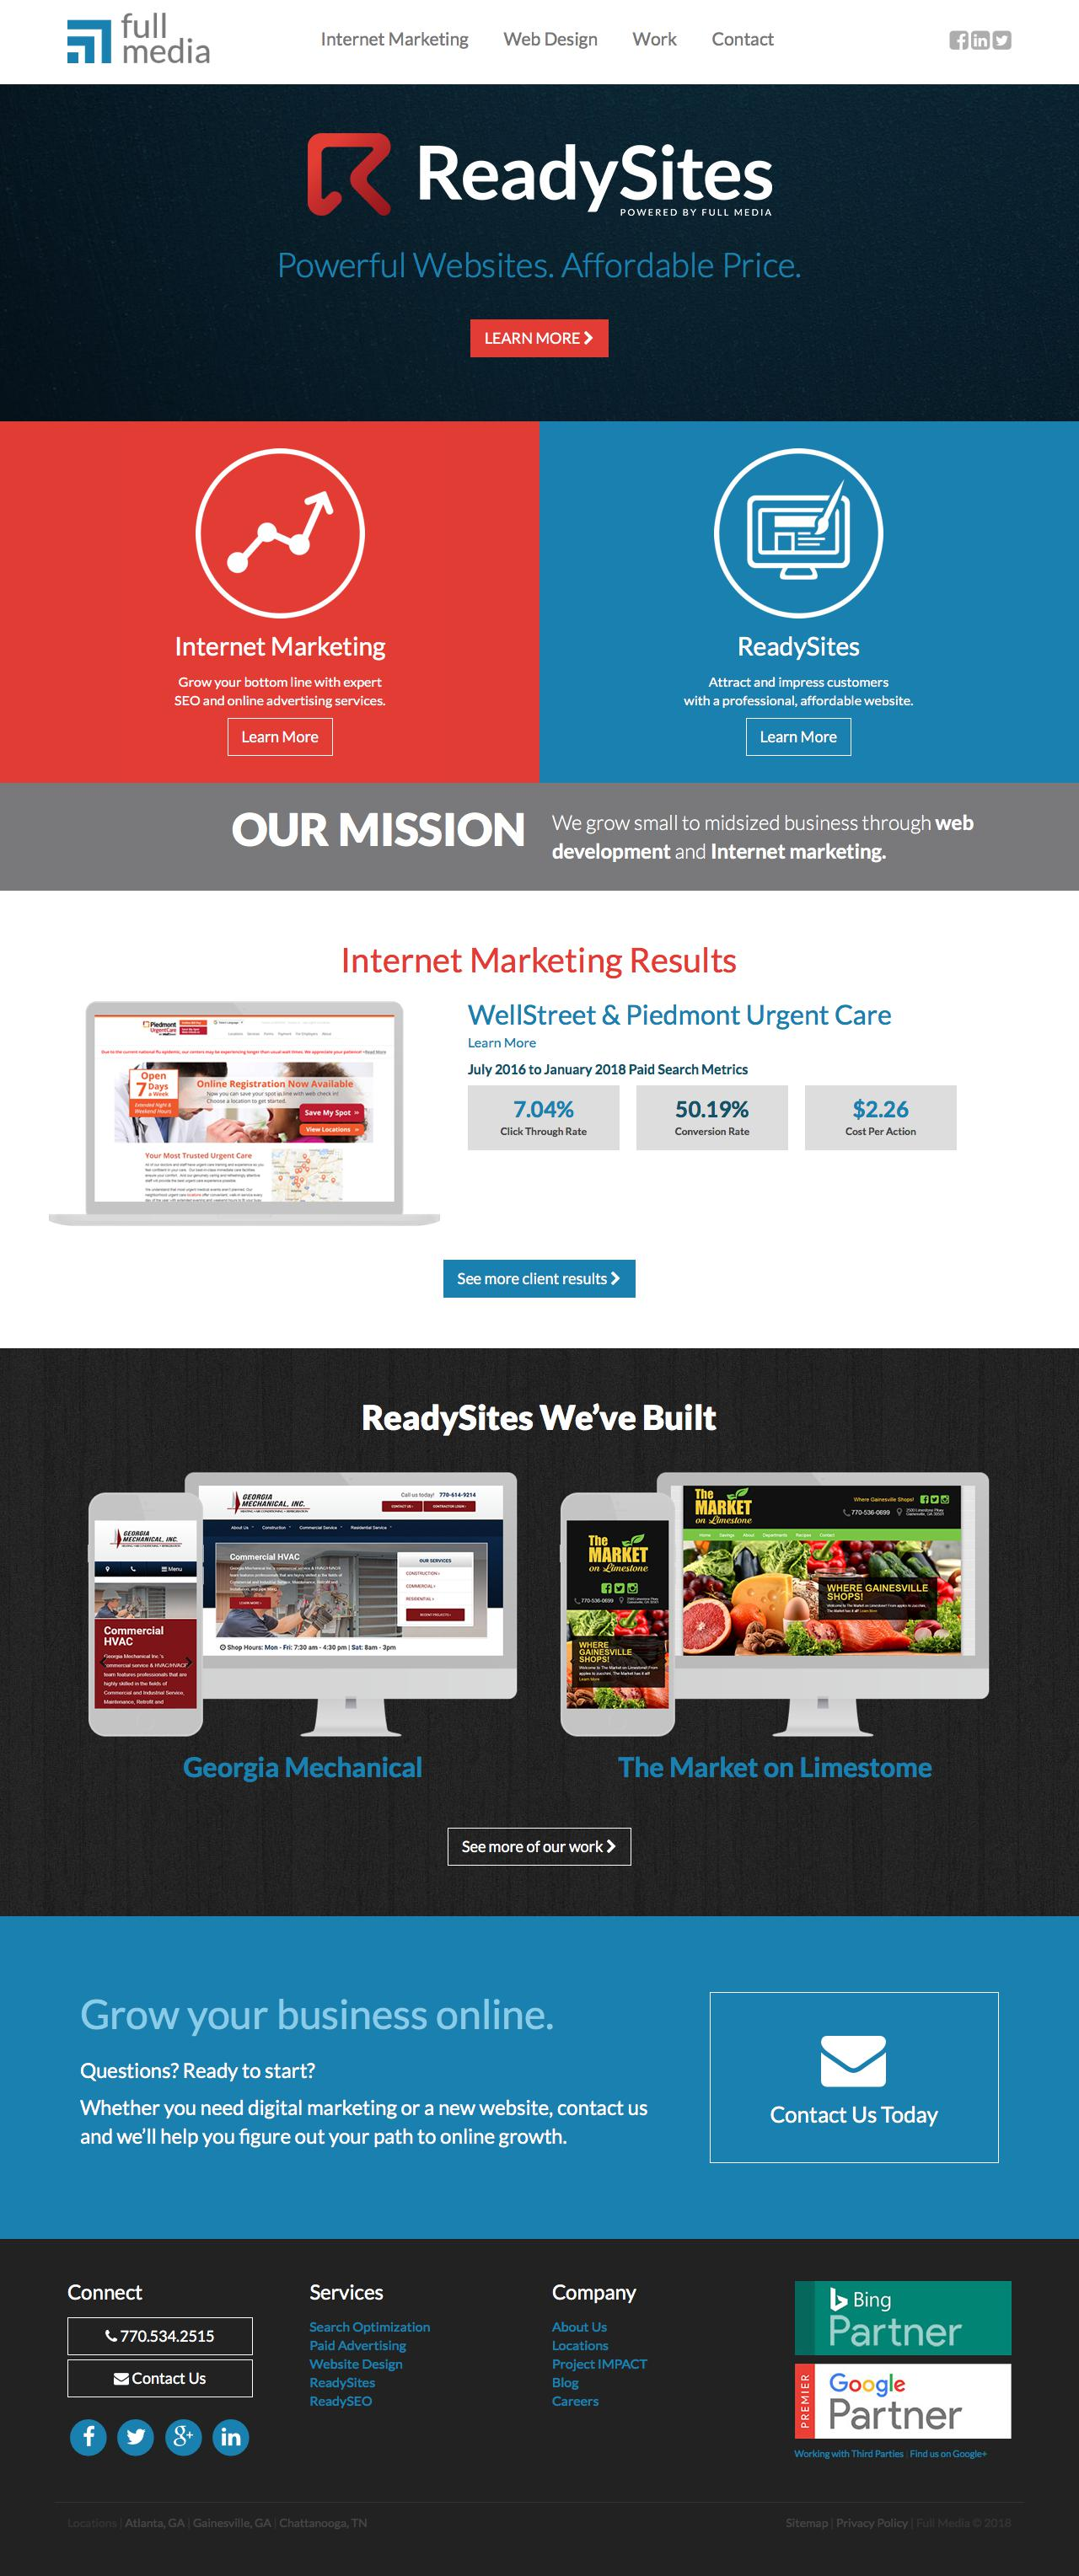 Screenshot of fullmedia.com - Internet Marketing & Web Design Company | Full Media - captured March 5, 2018